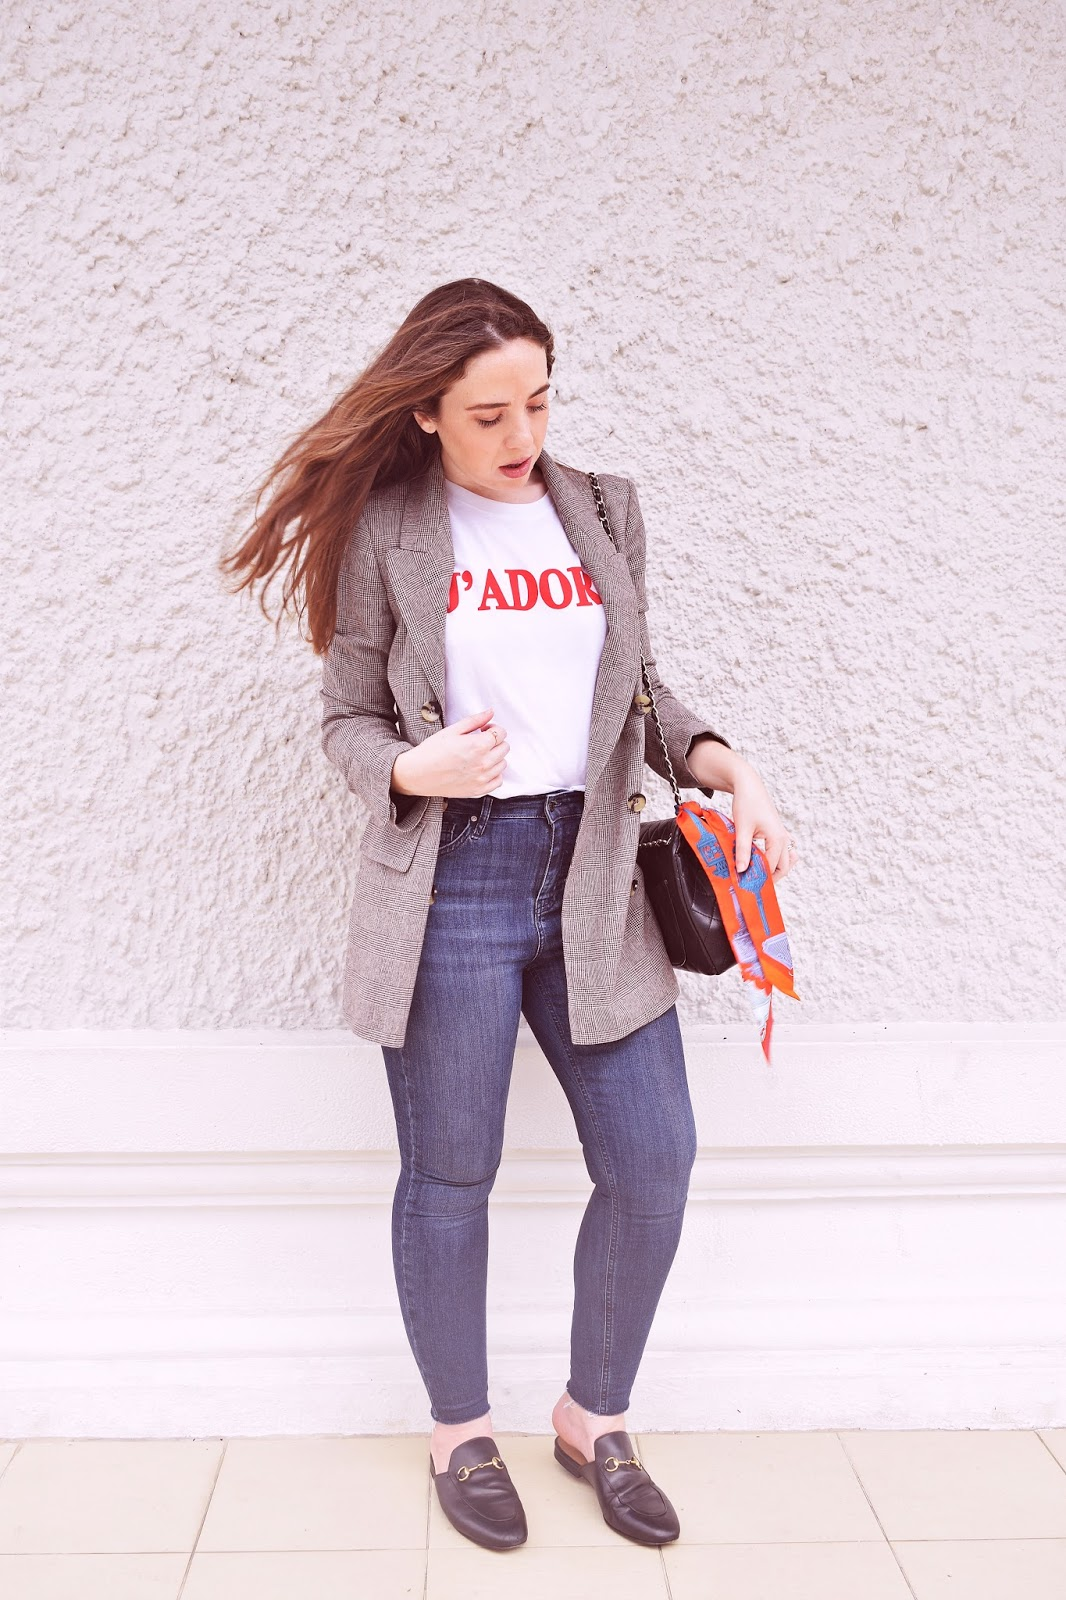 zara checked blazer outfit, gucci mules shoes, singapore life